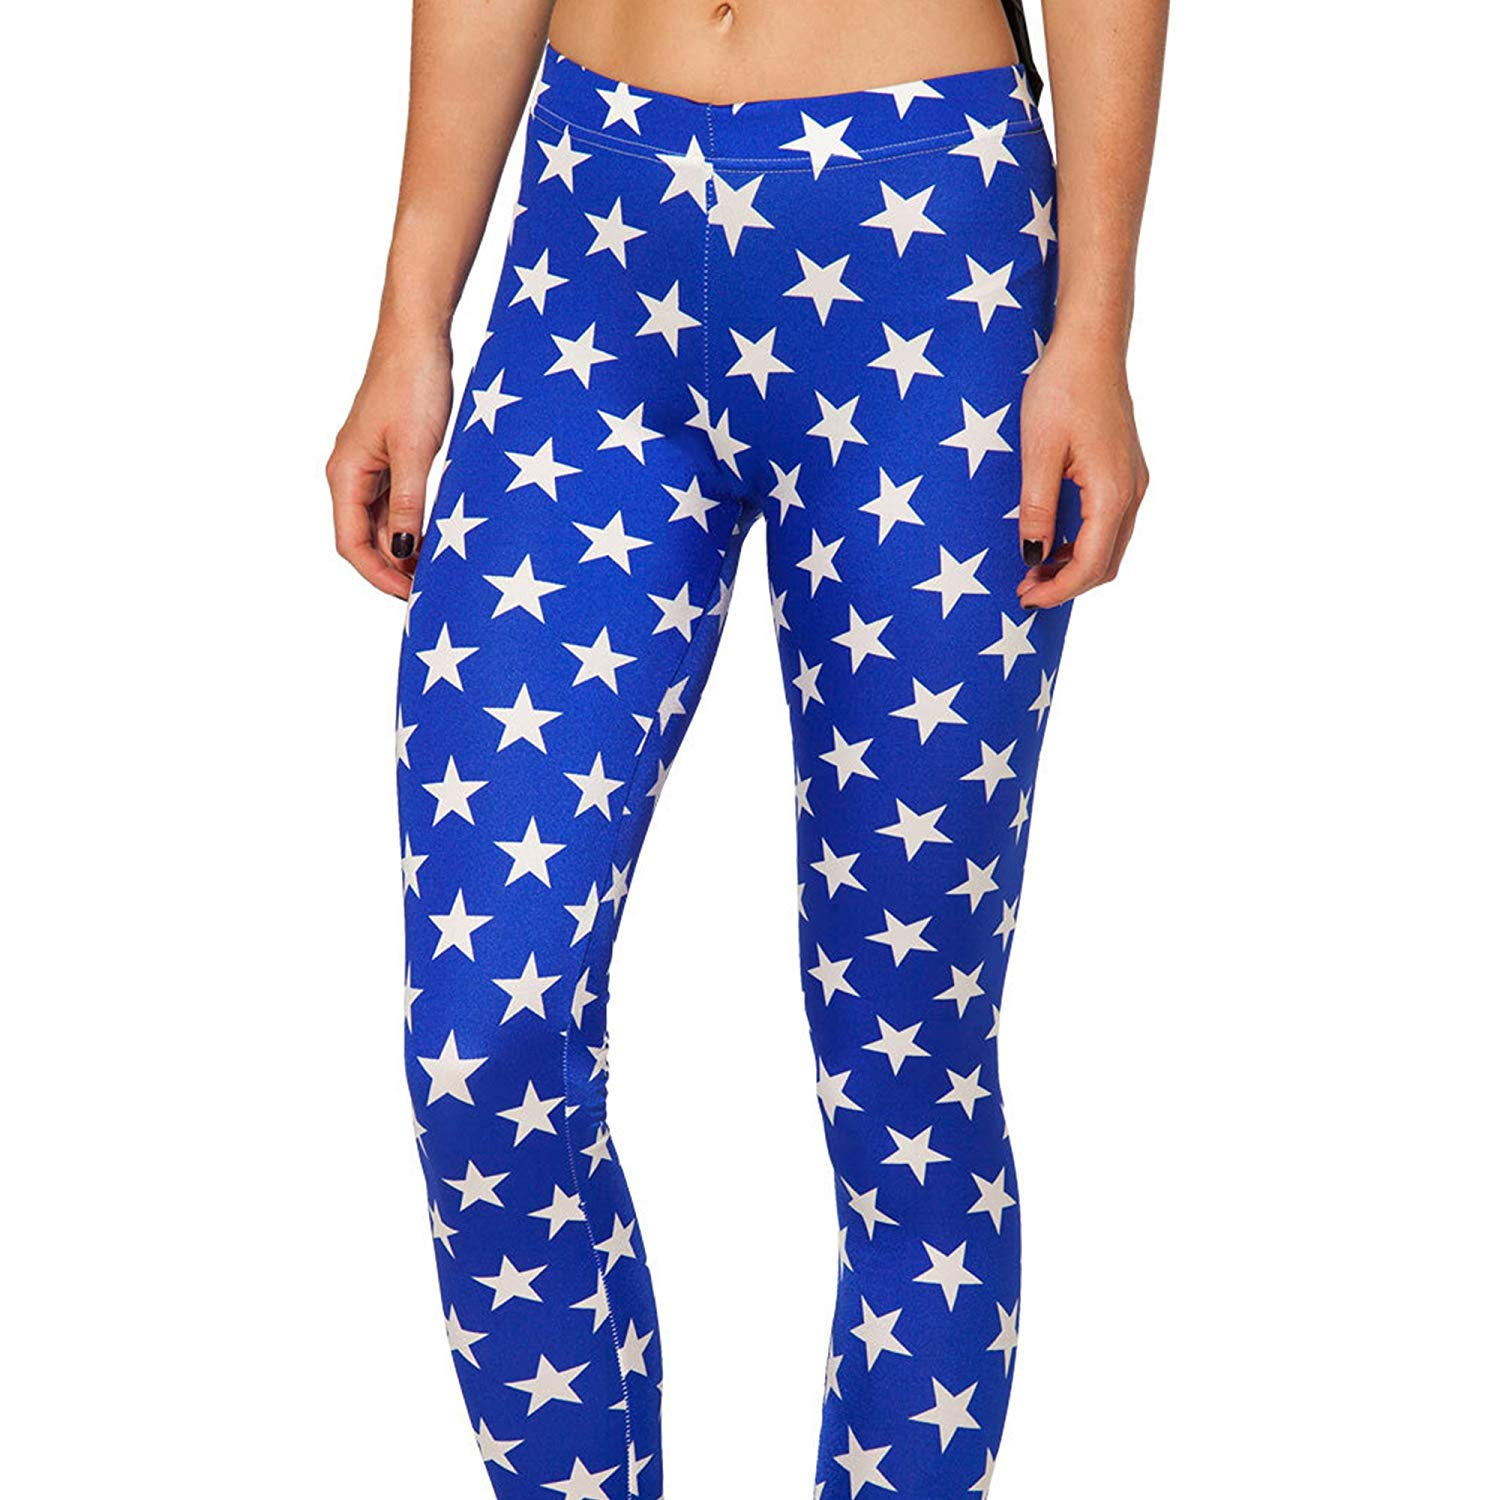 Ensasa Women'S Fashion Digital Print Blue Stars Spandex Strenchy Leggings